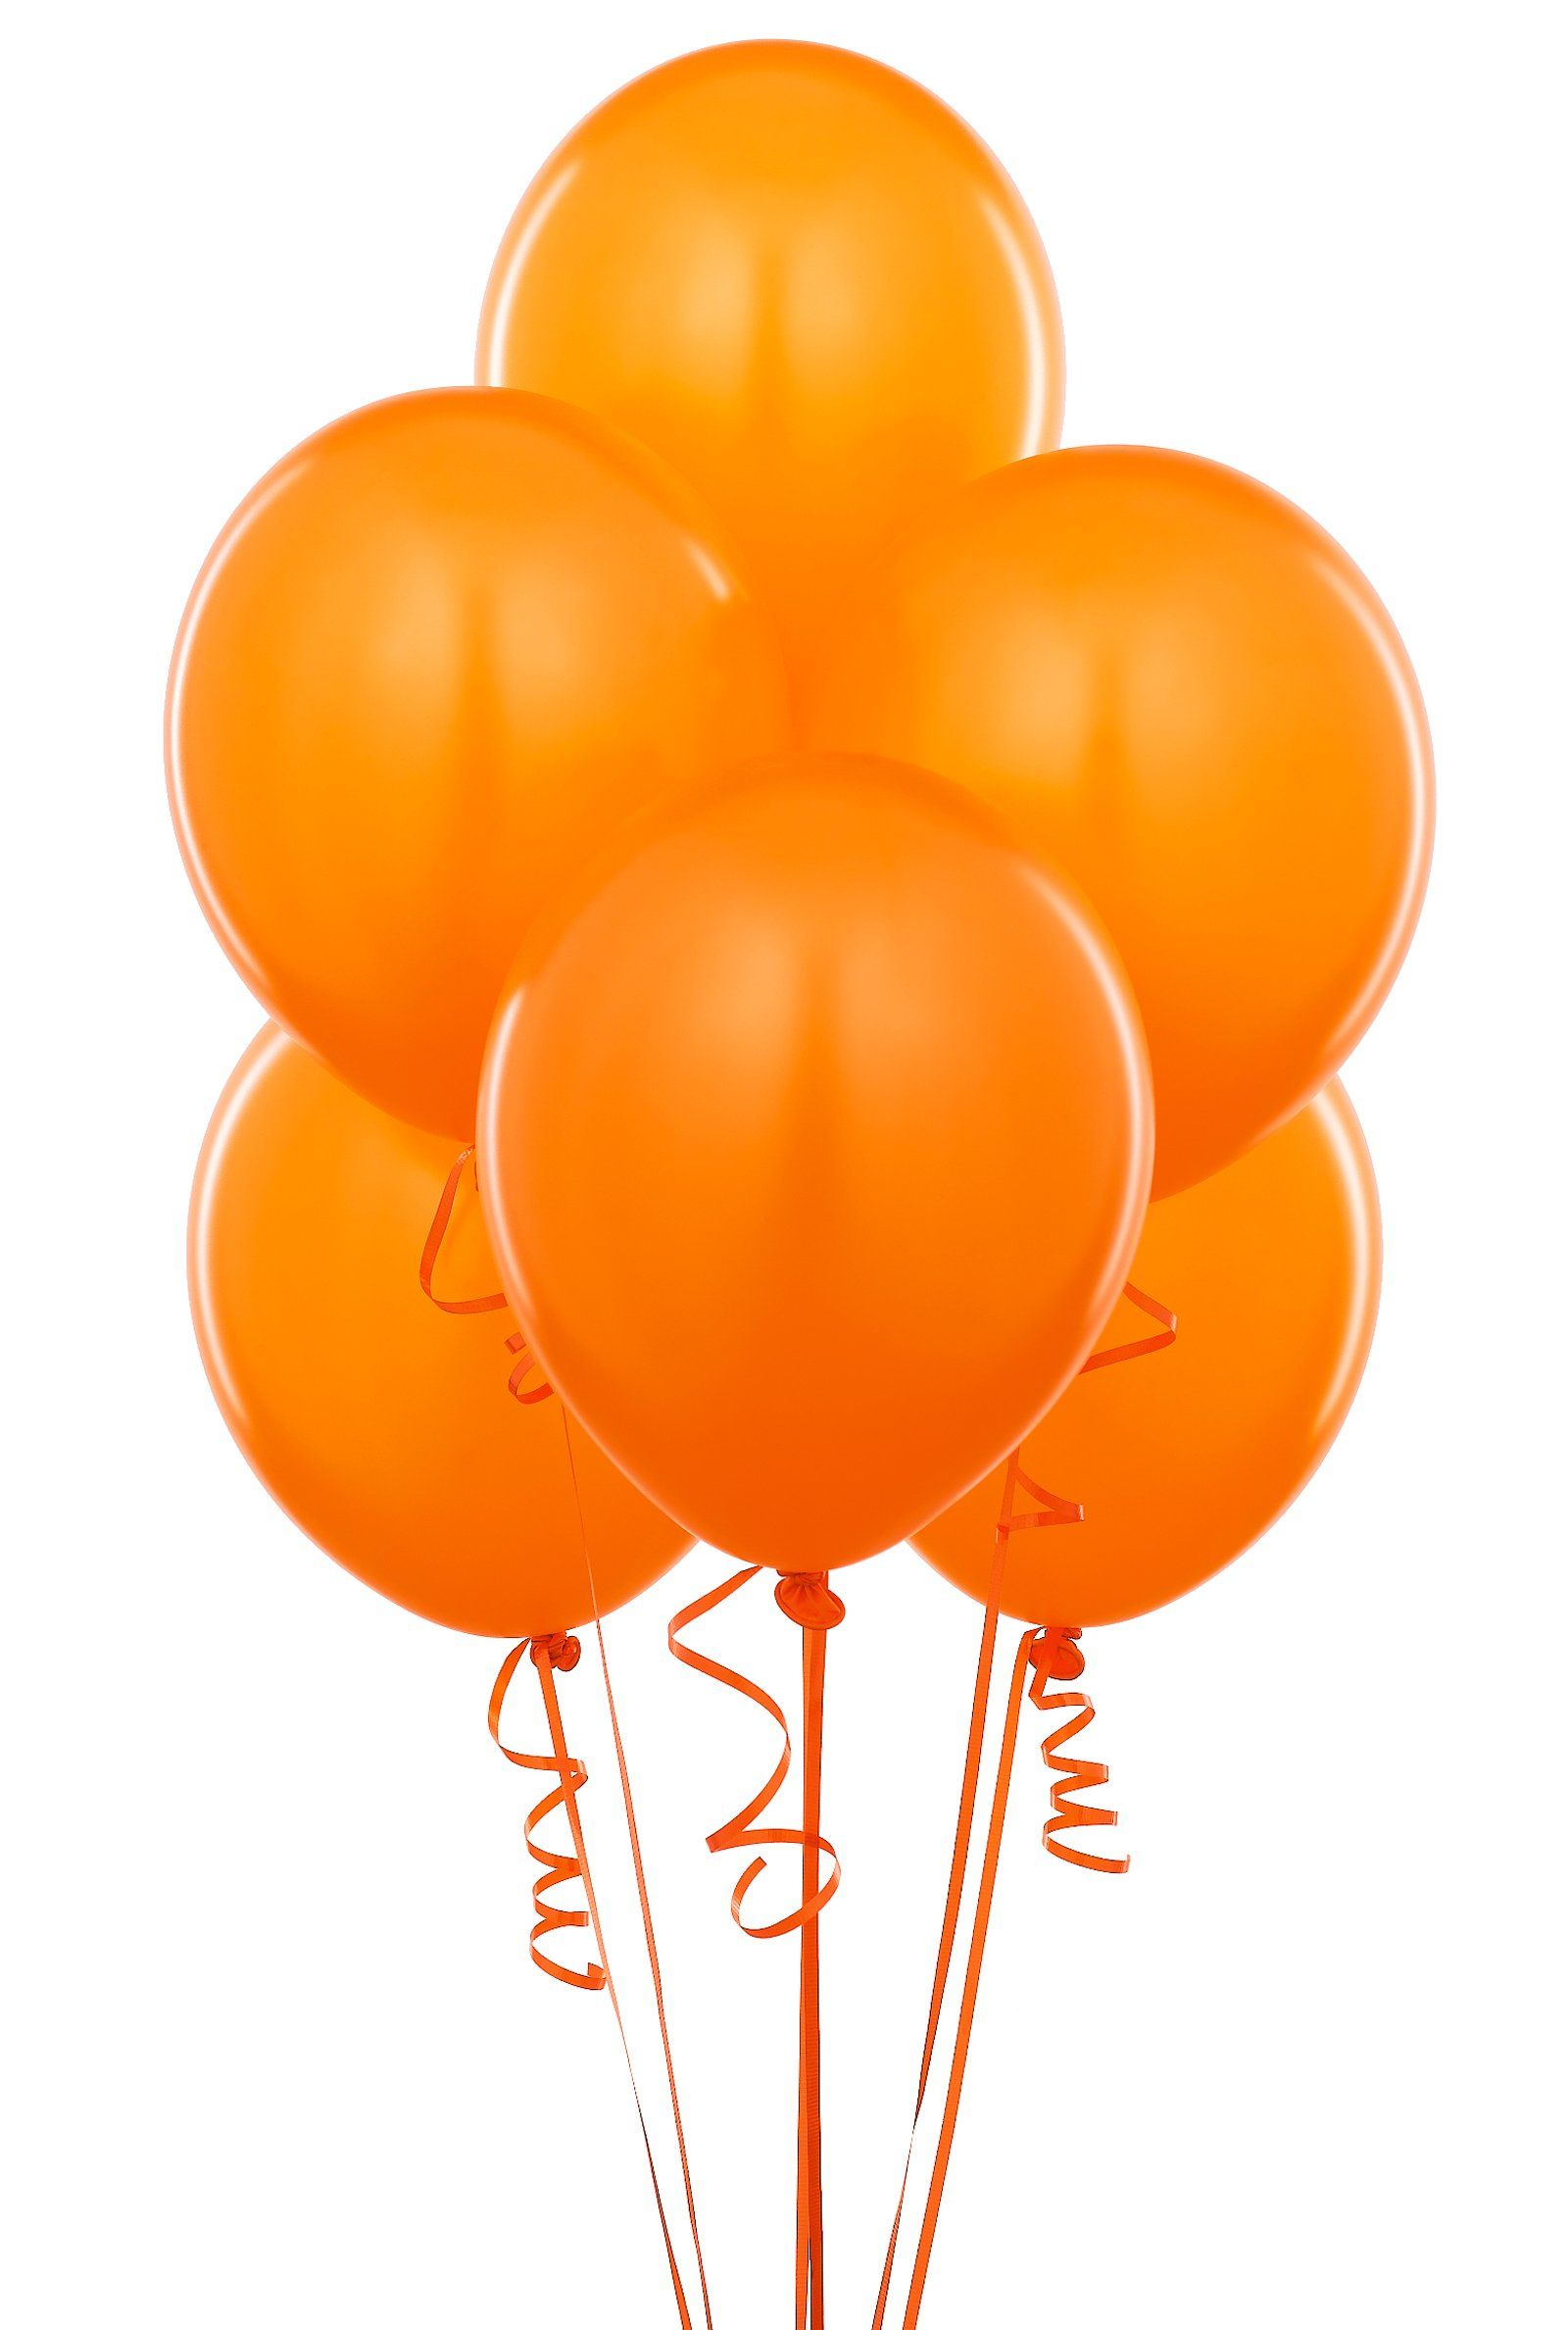 Orange Balloons With Images